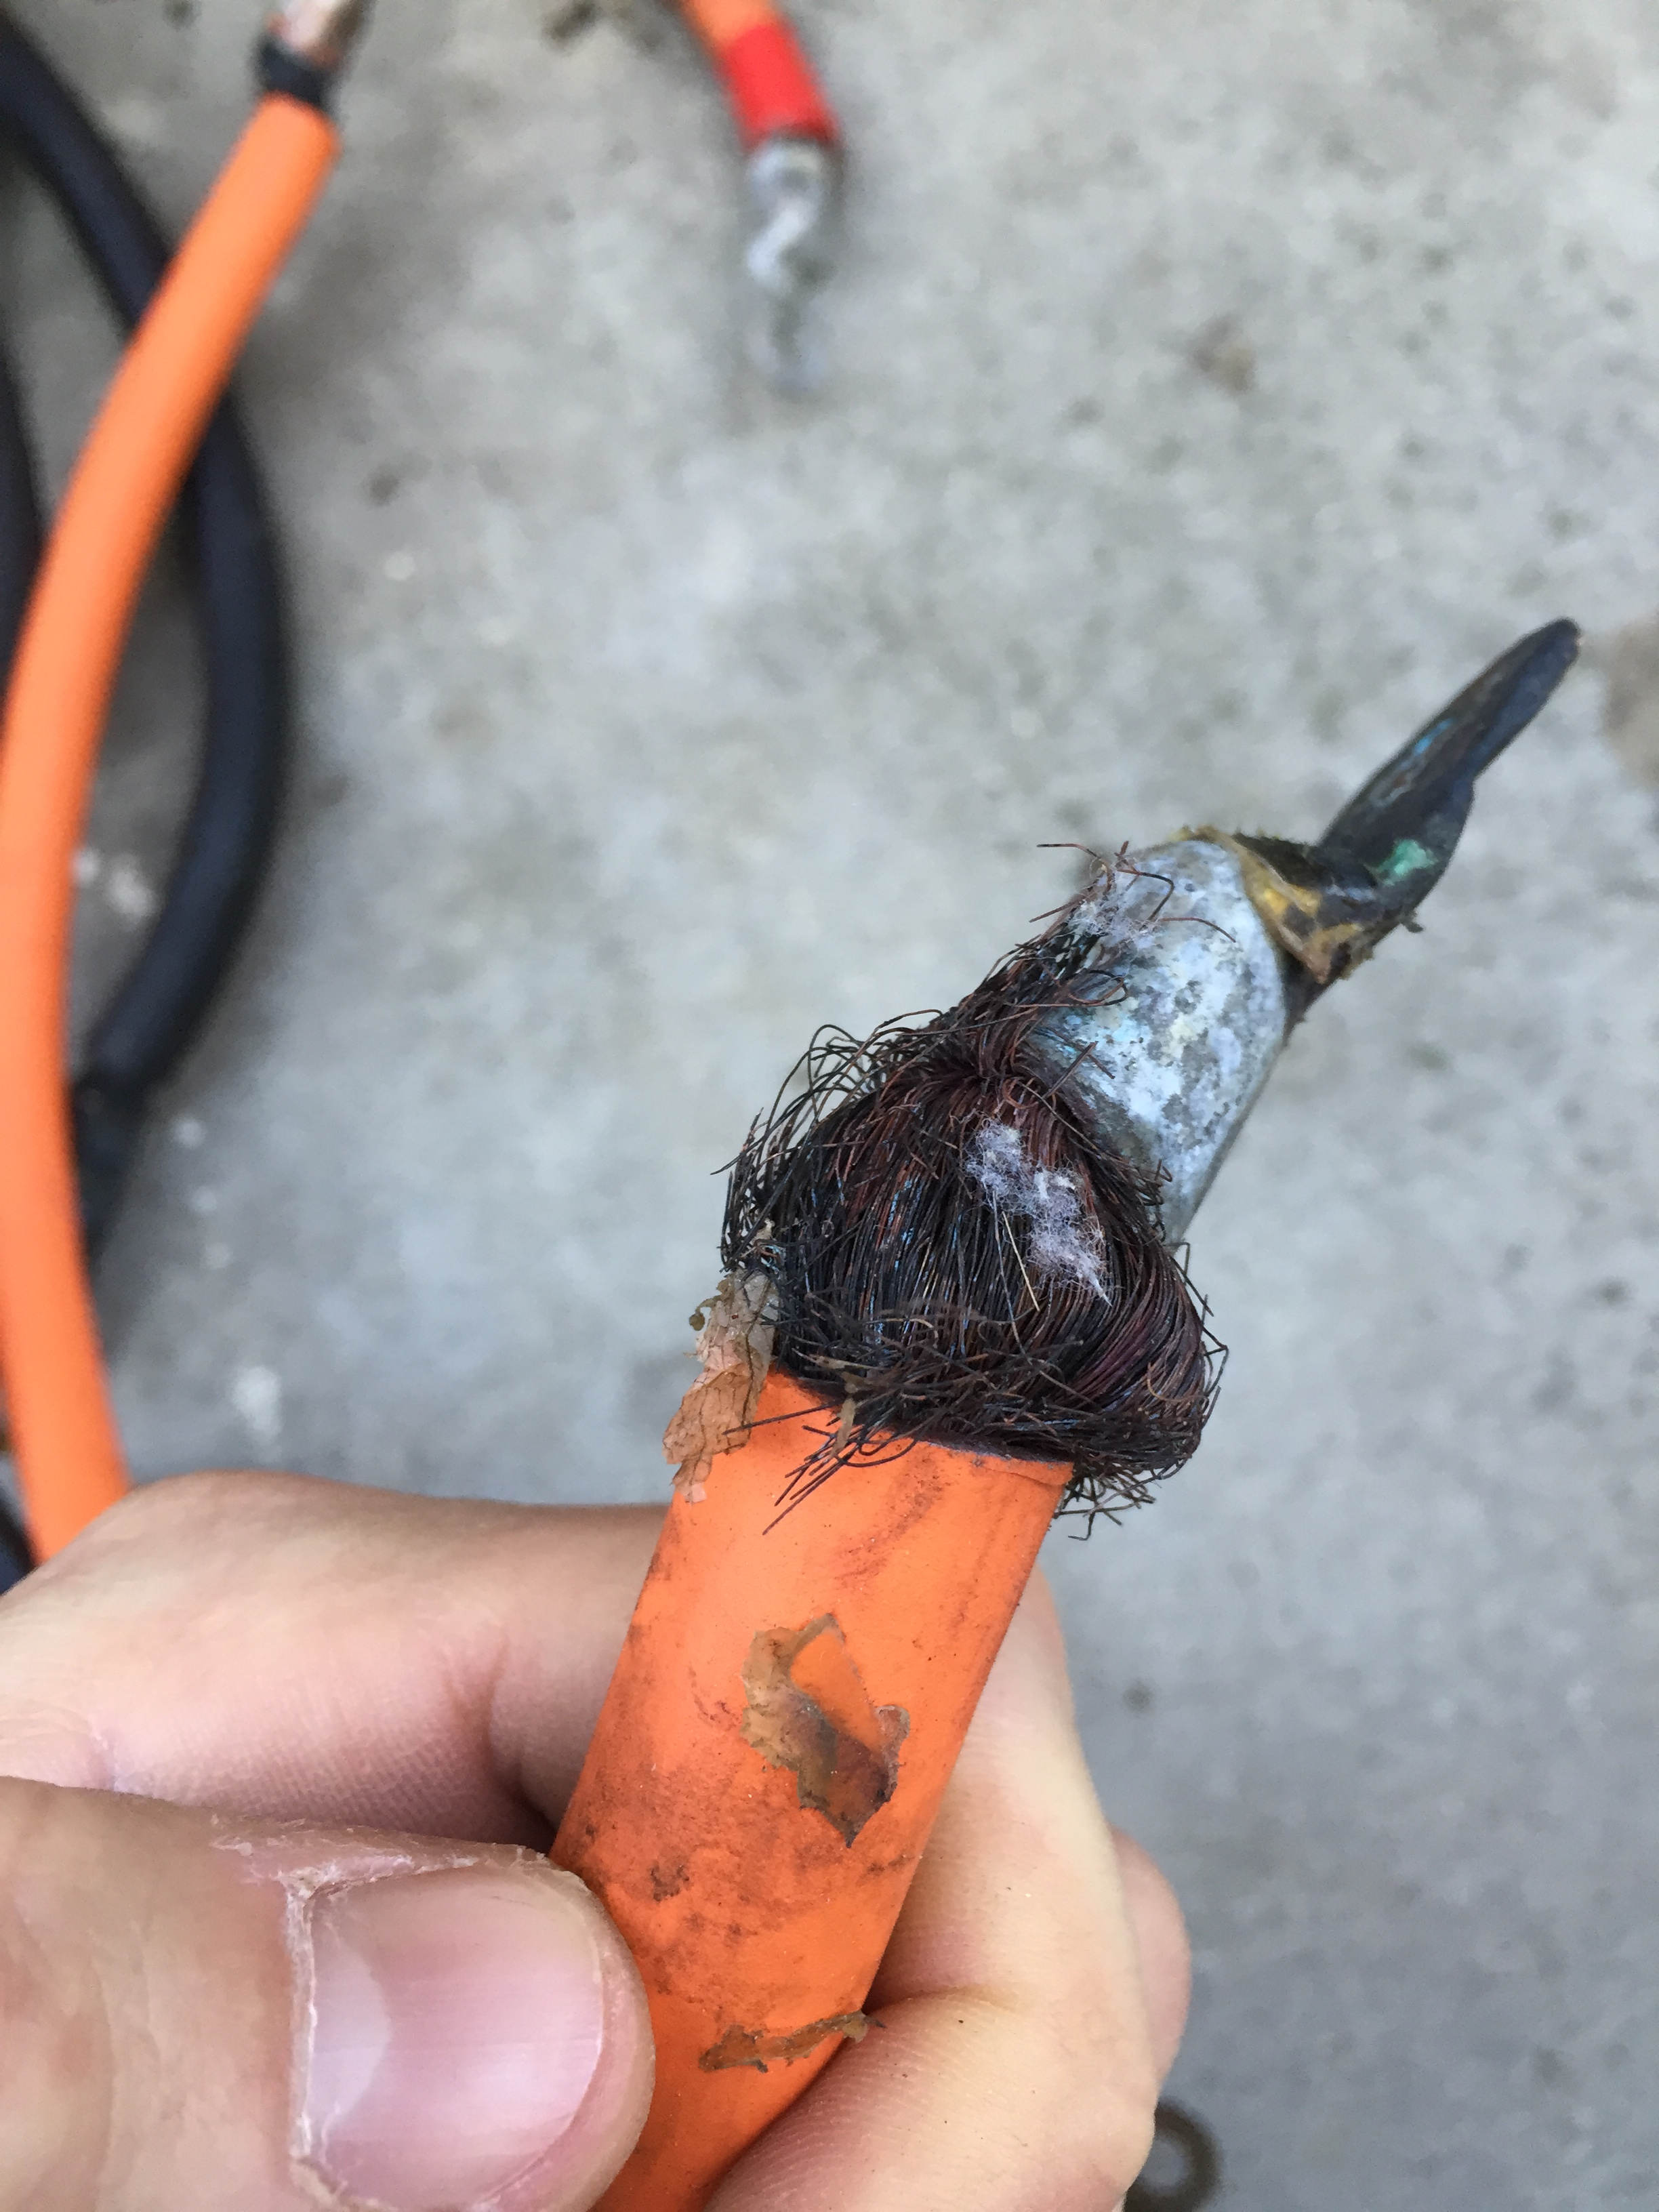 Welding cable that has been corroded and is breaking apart the outside exposed wires.